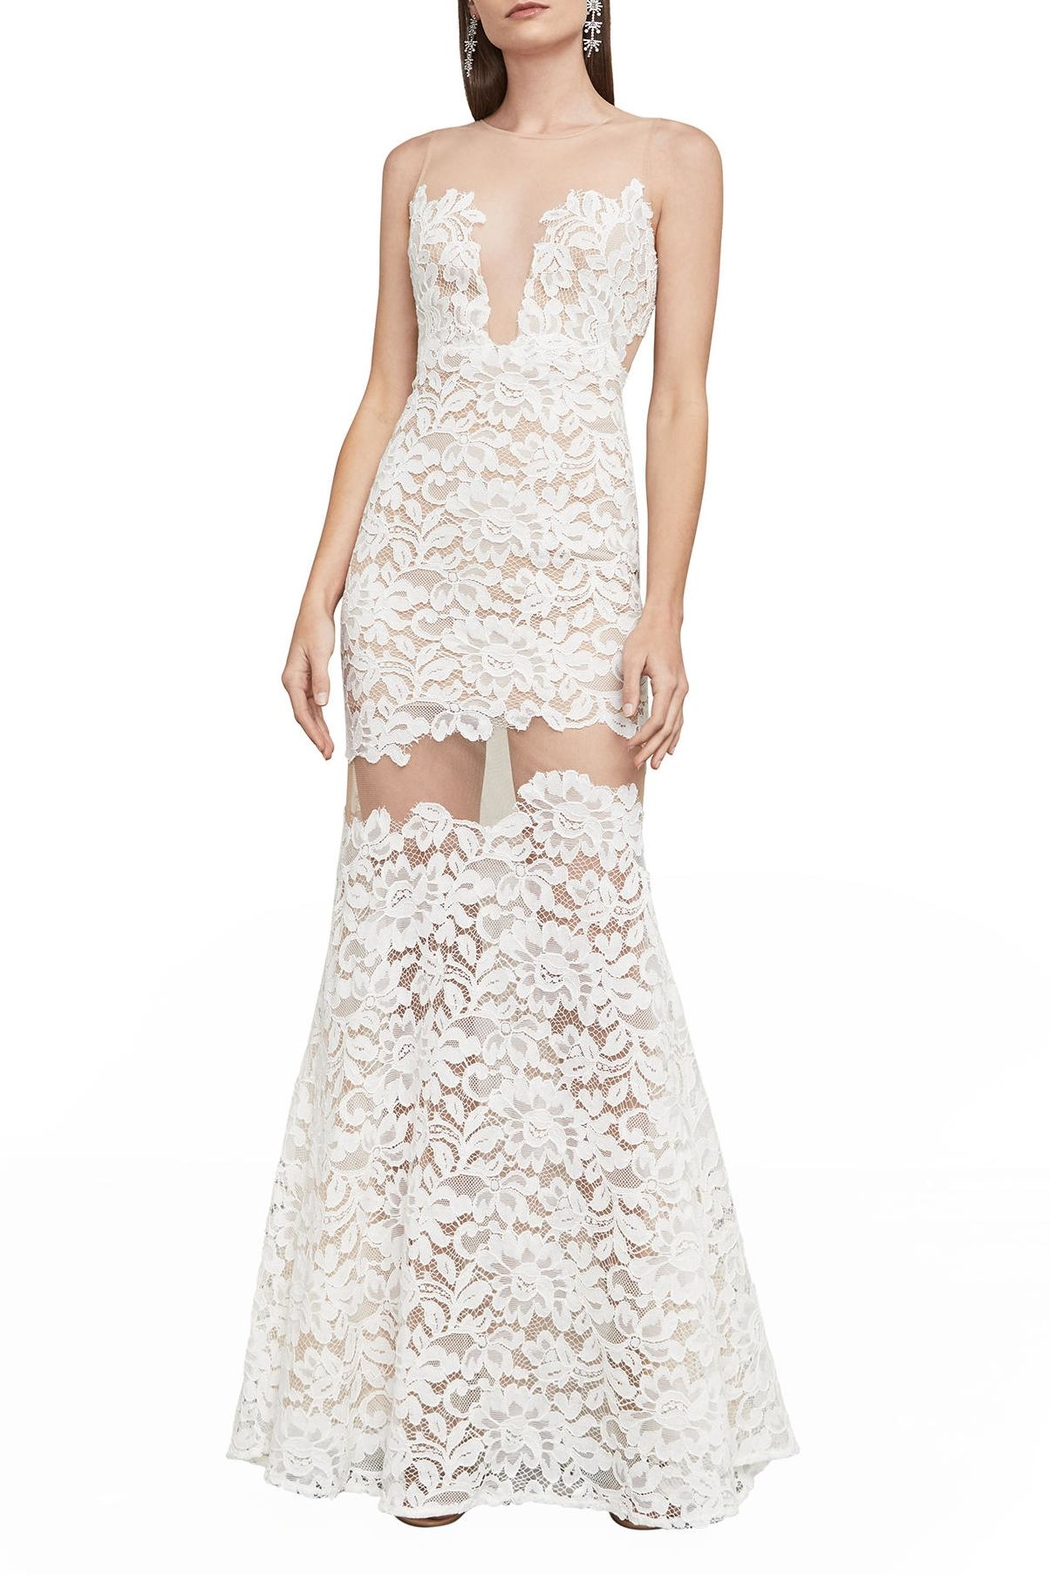 BCBG Max Azria Floral Lace Gown - Front Full Image